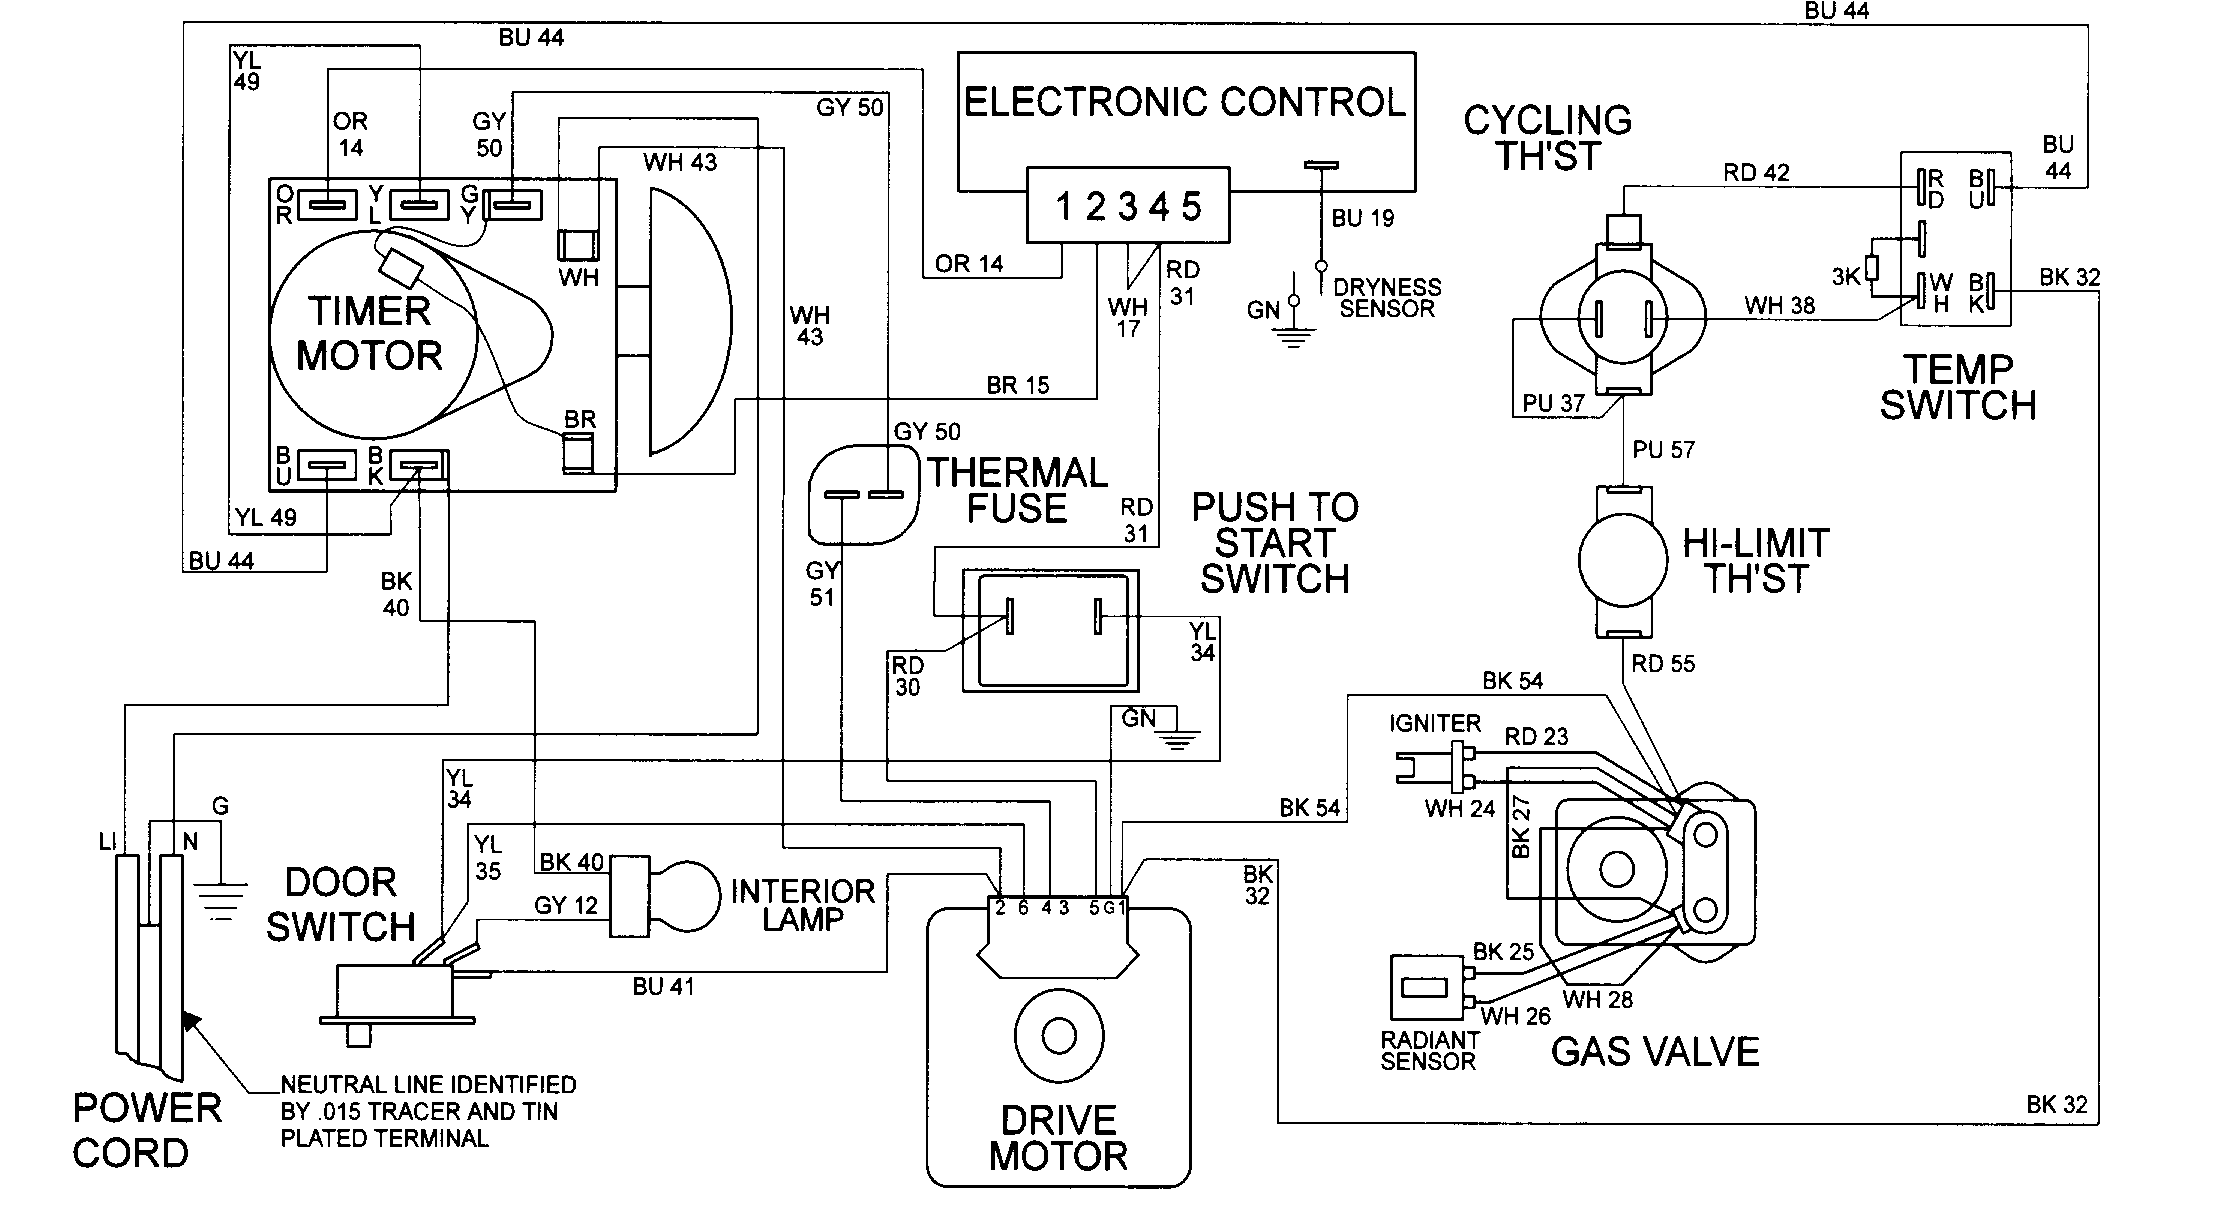 M0407320 00007 wiring diagram for maytag dryer wiring wiring diagrams collection  at crackthecode.co